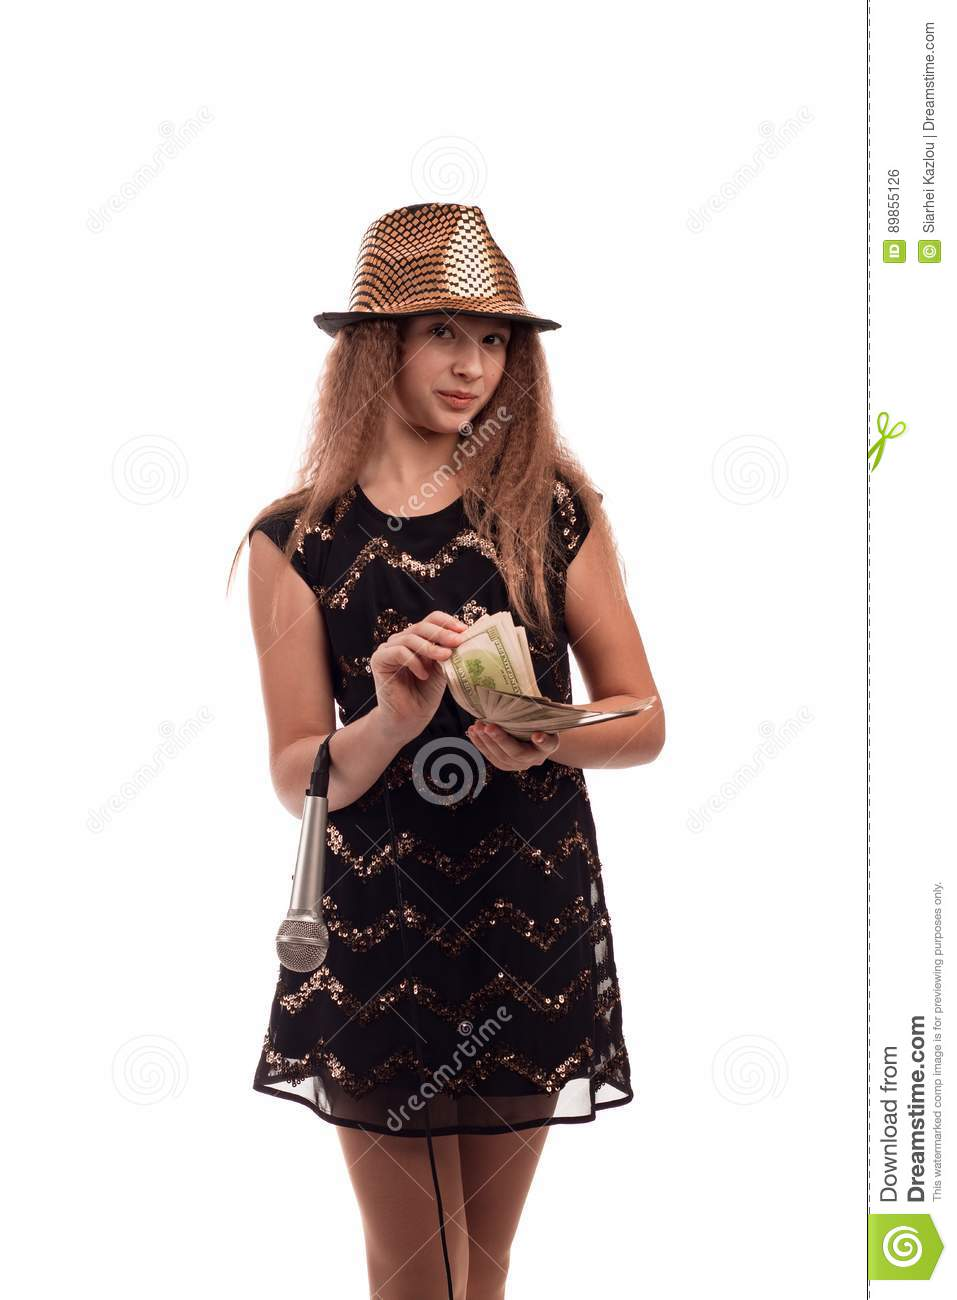 Young Girl With Long Hair Wearing A Black Dress And Gold Hat With A